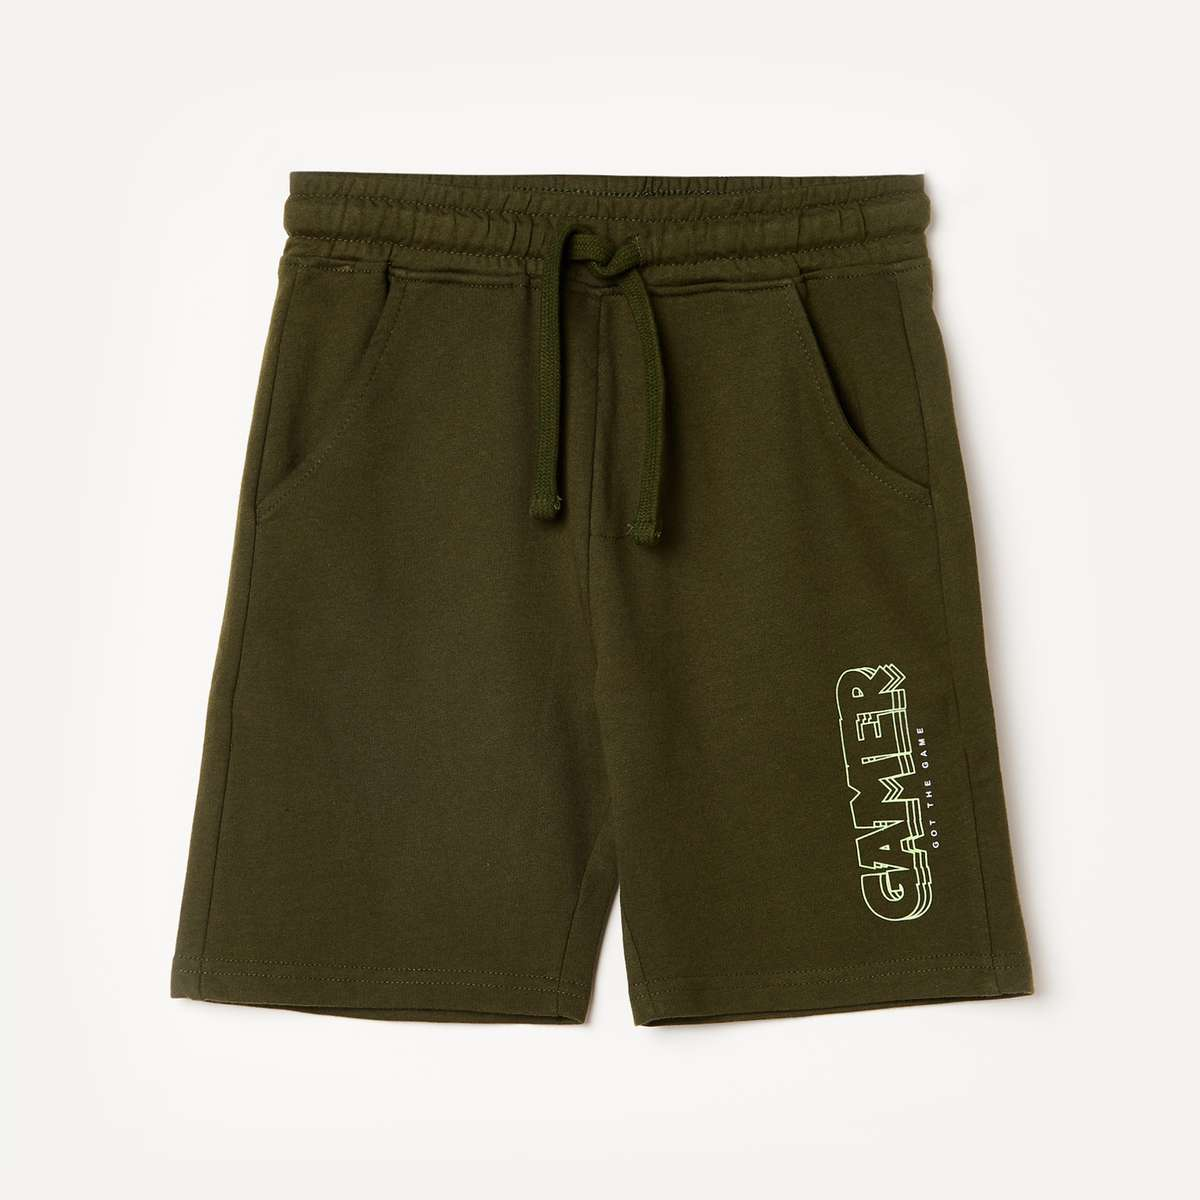 5.FAME FOREVER YOUNG Boys Printed Elasticated Shorts